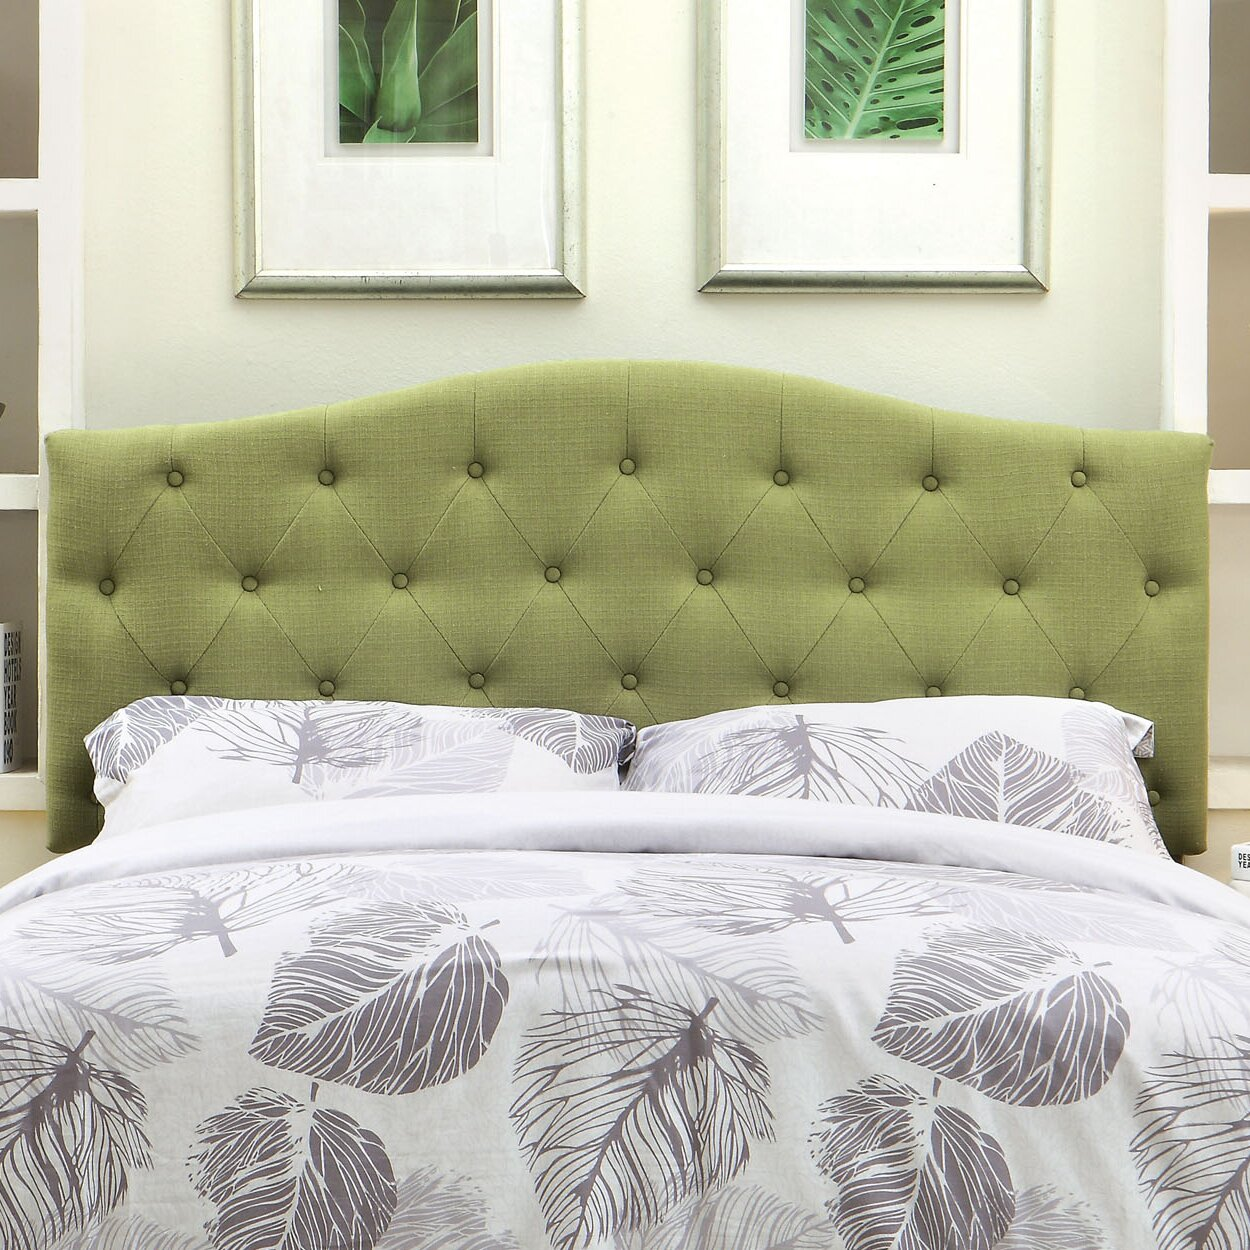 How to cover a headboard - Charlton Home Reg Scarcly Upholstered Panel Headboard